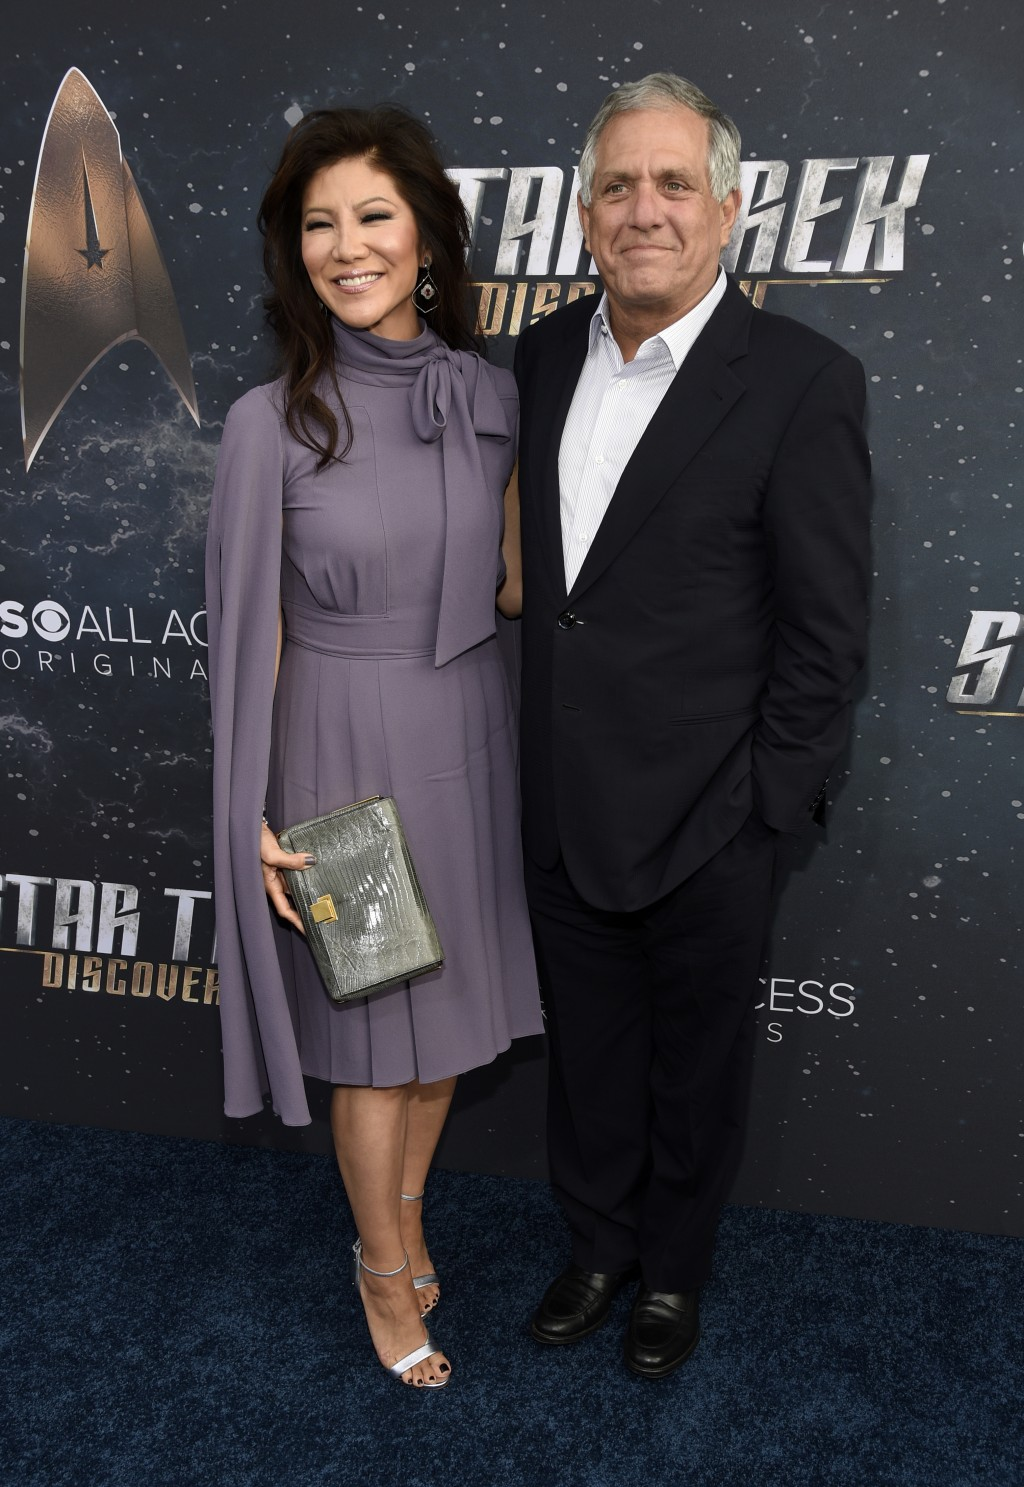 FILE - In this Sept. 19, 2017 file photo, Les Moonves, right, chairman and CEO of CBS Corporation, poses with his wife, television personality Julie C